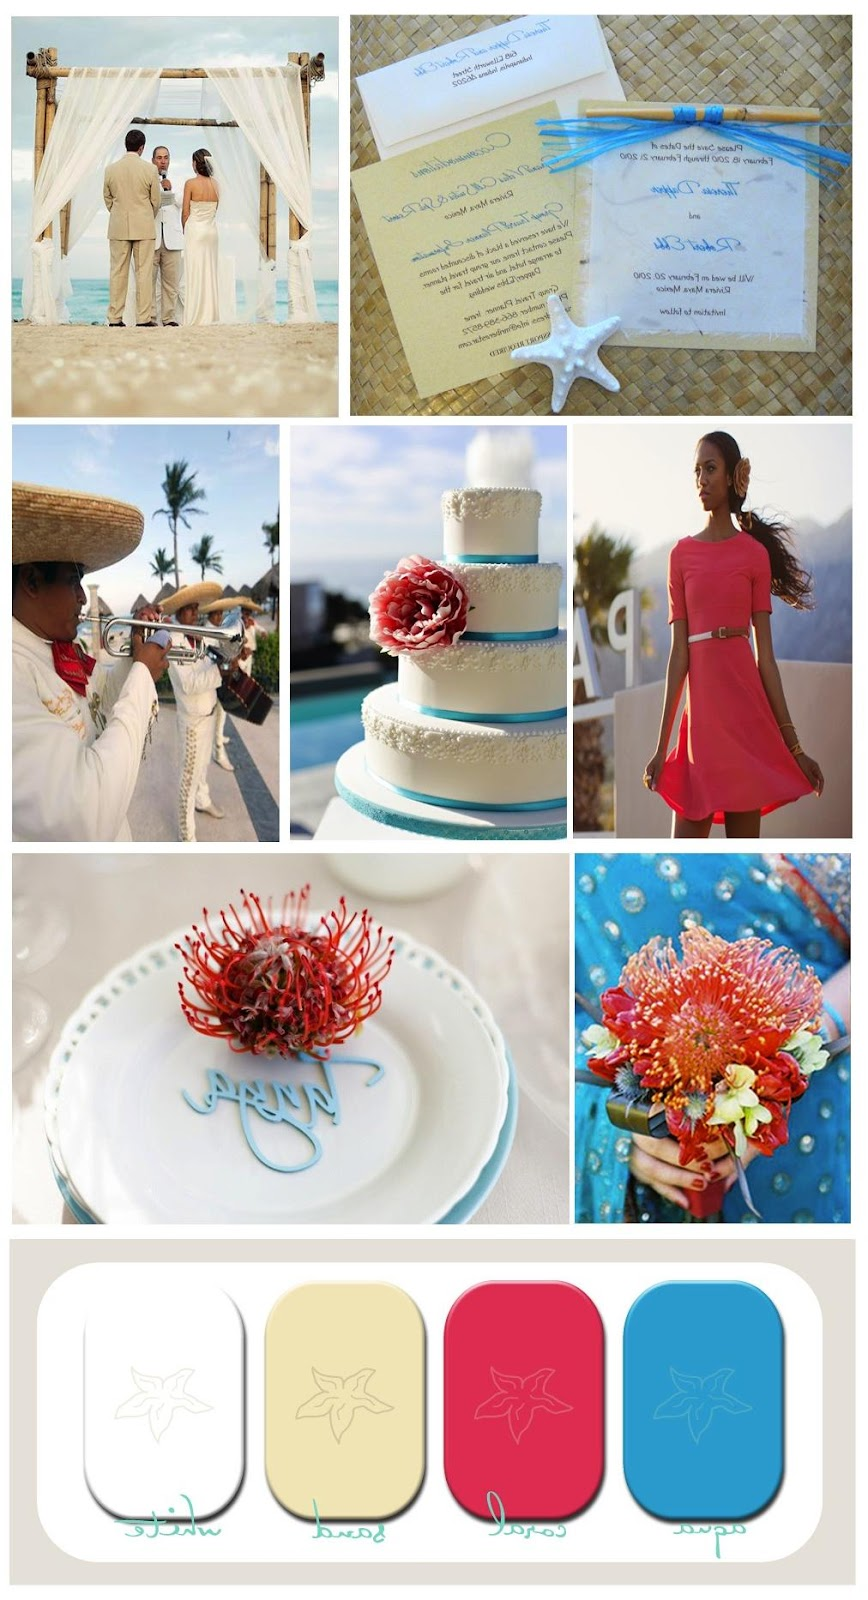 This wedding inspiration board